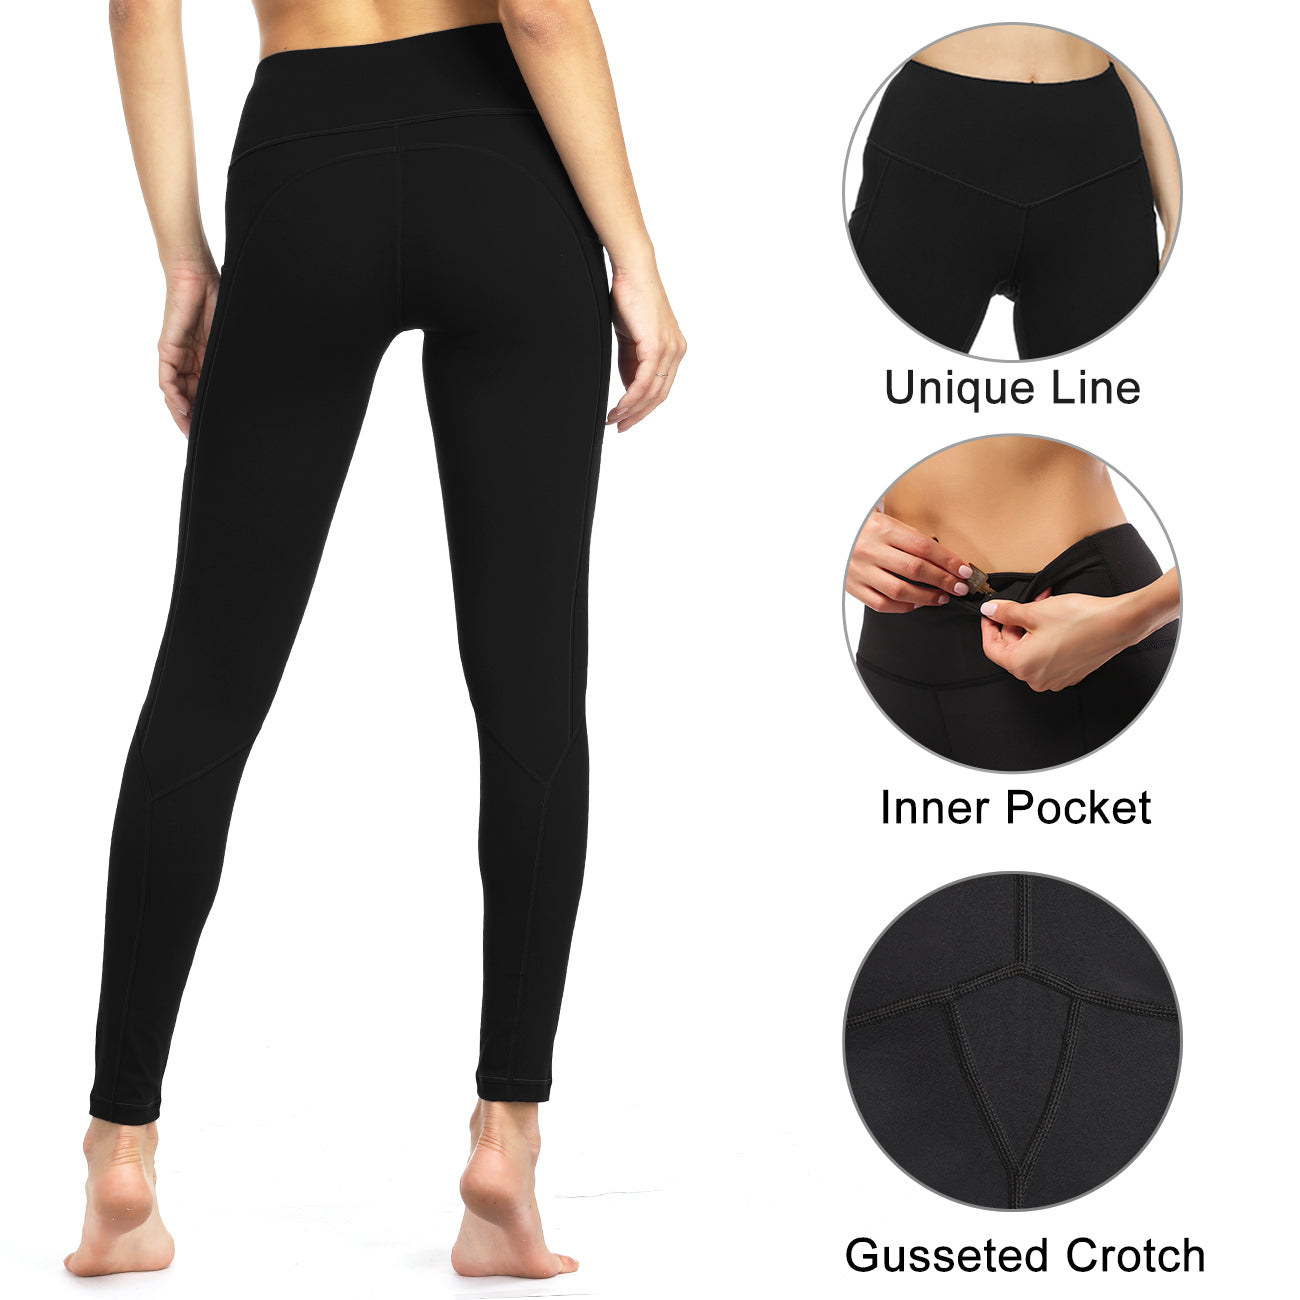 59663f17aee LifeSky Yoga Pants for Women Workout Leggings with Pockets Tummy ...